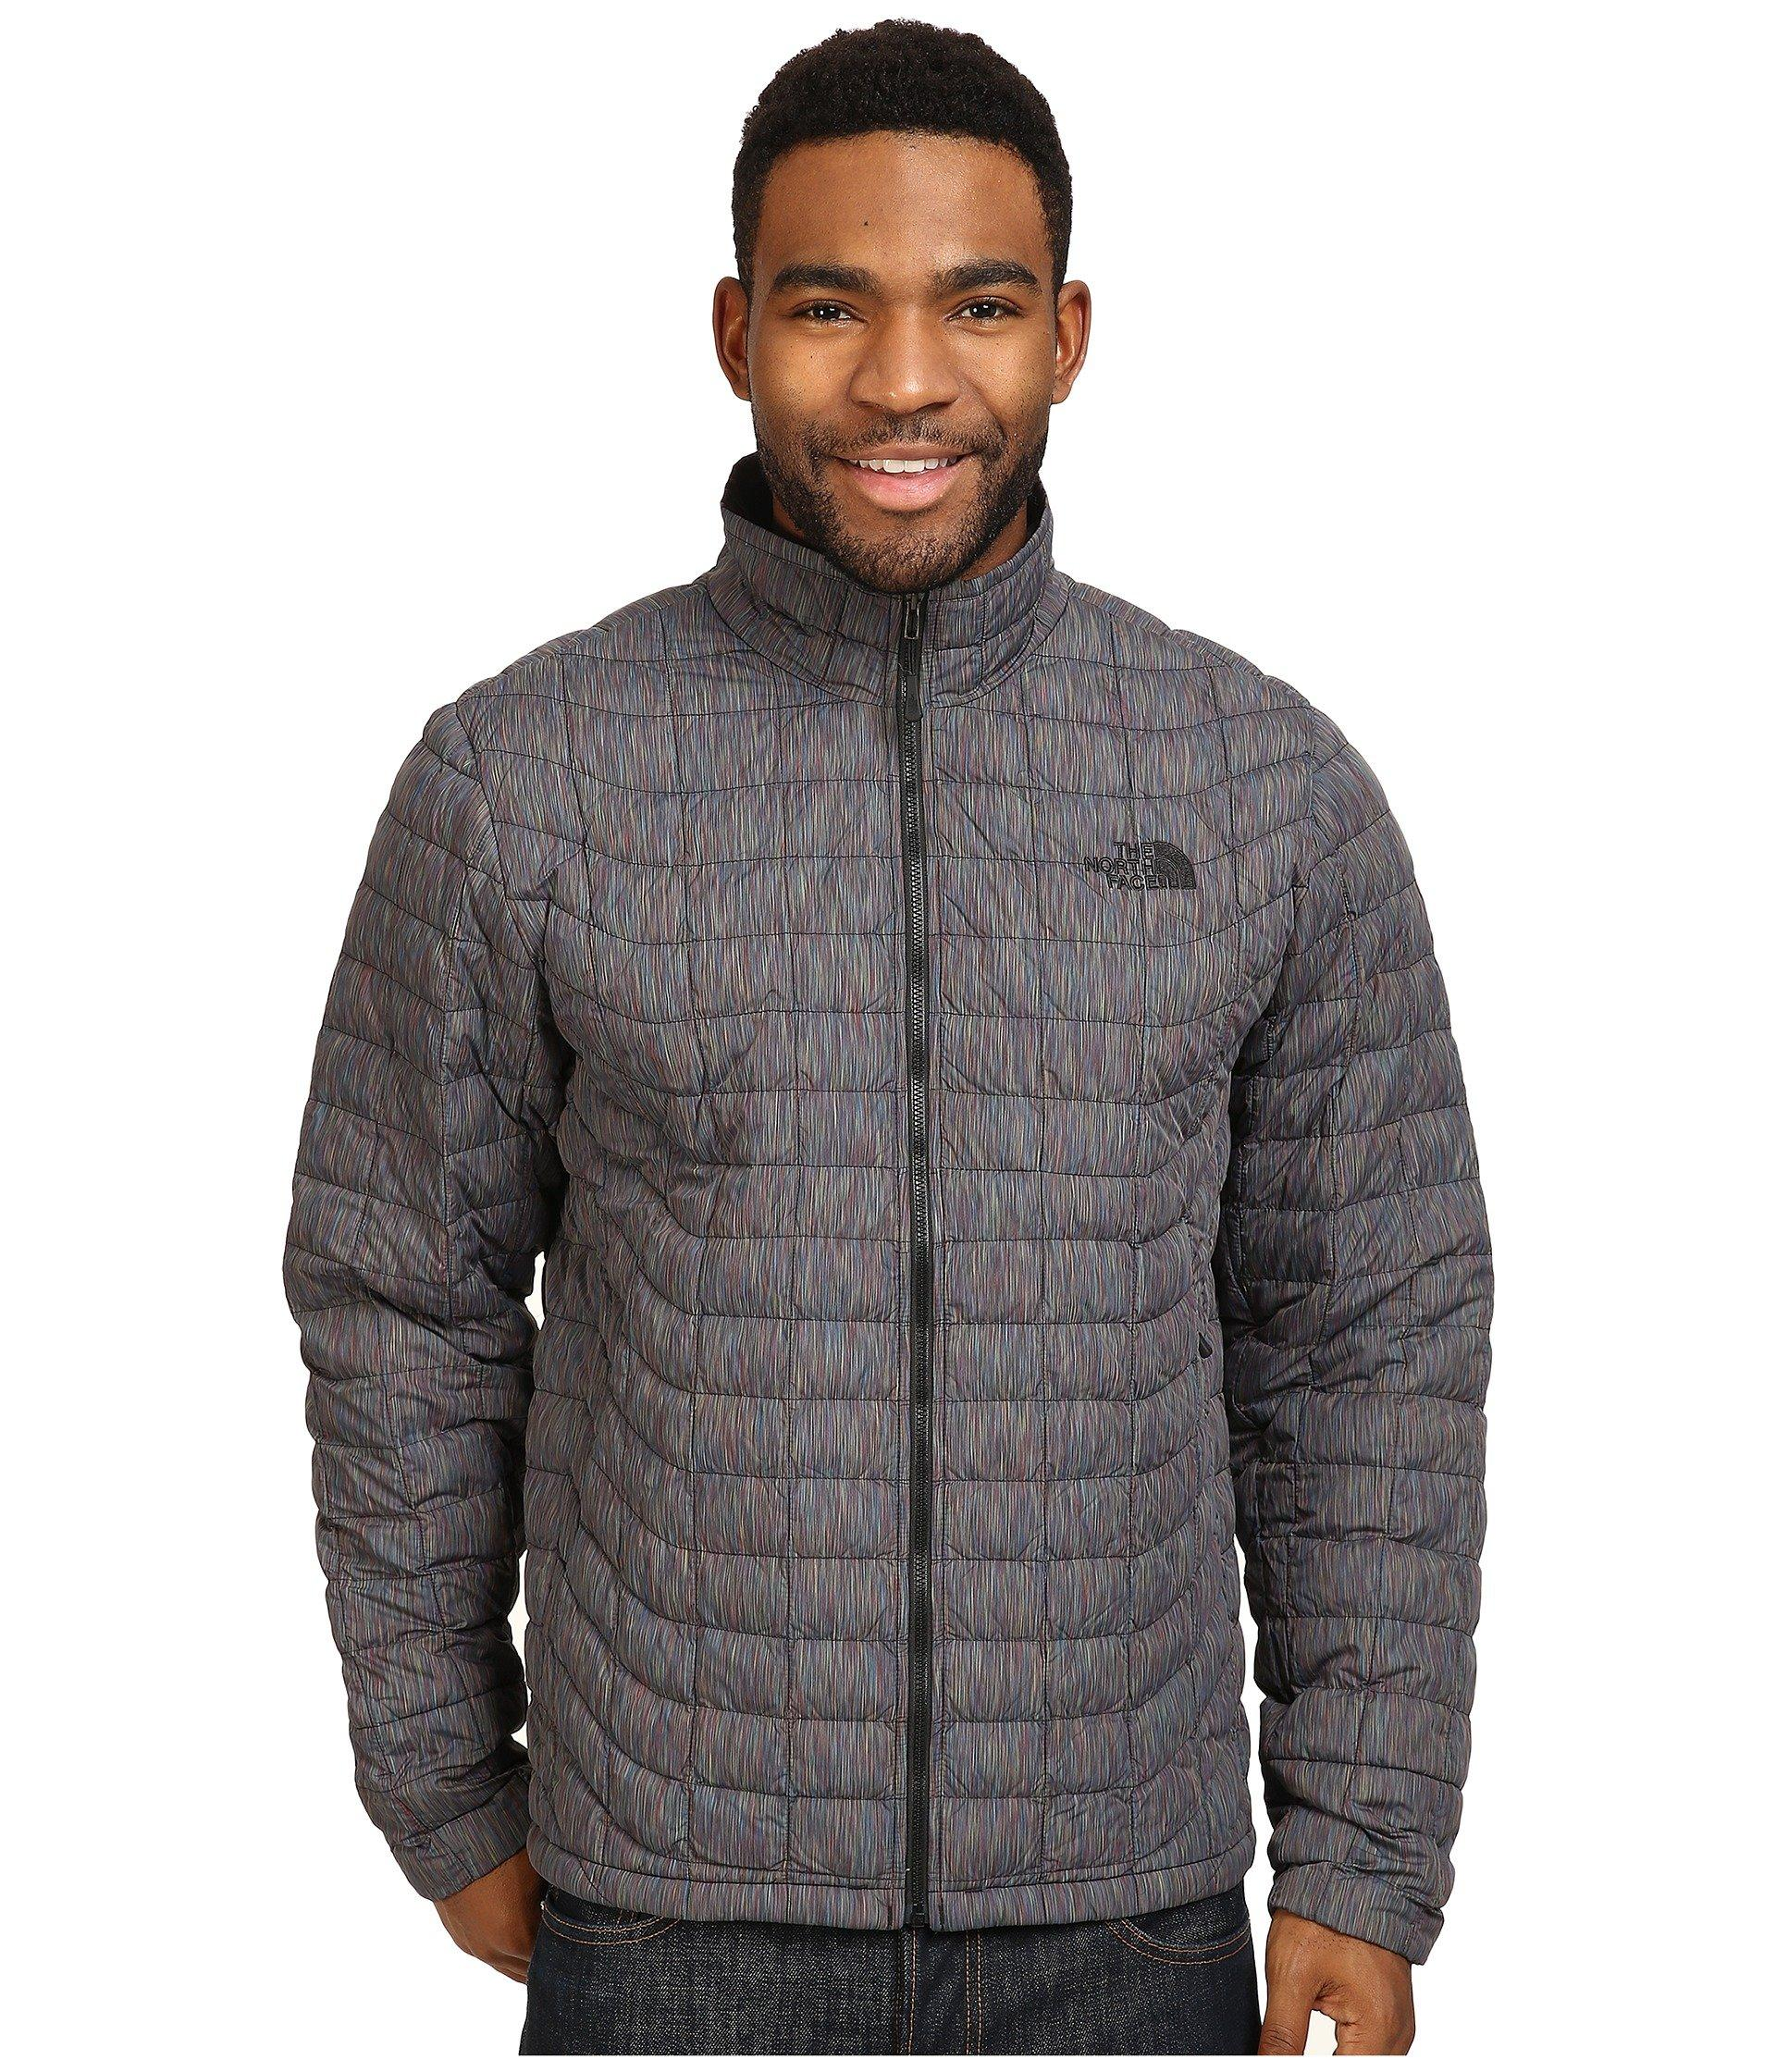 d36b13d93bc7 The North Face Thermoball™ Full Zip Jacket In Tnf Black Multicolor (Prior  Season)